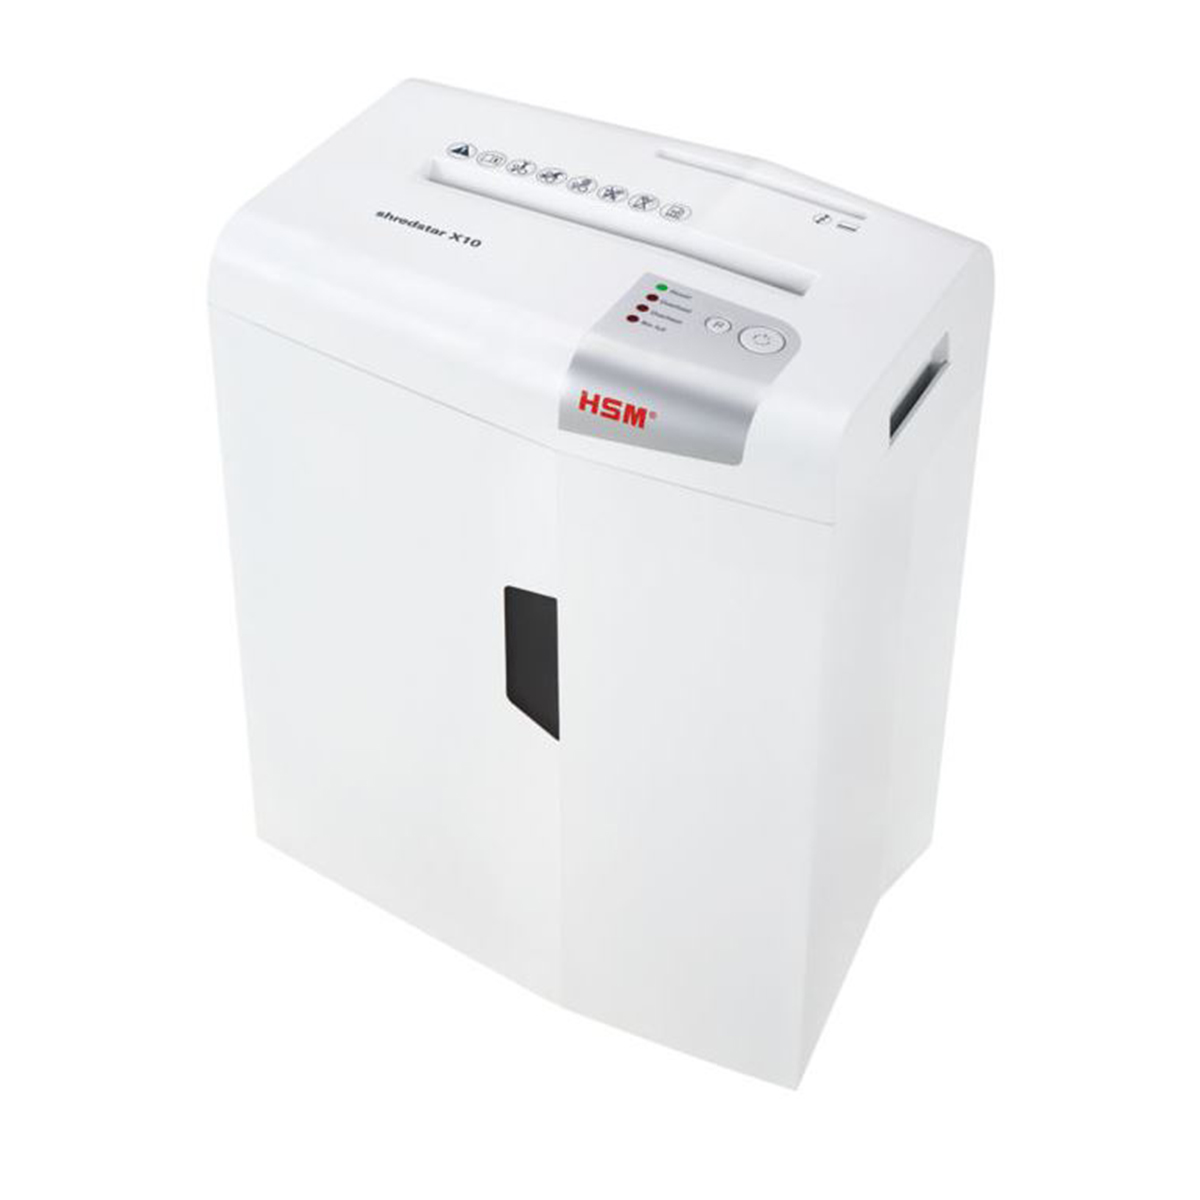 HSM Shredstar X10 4.5 x 30mm Cross Cut Shredder White